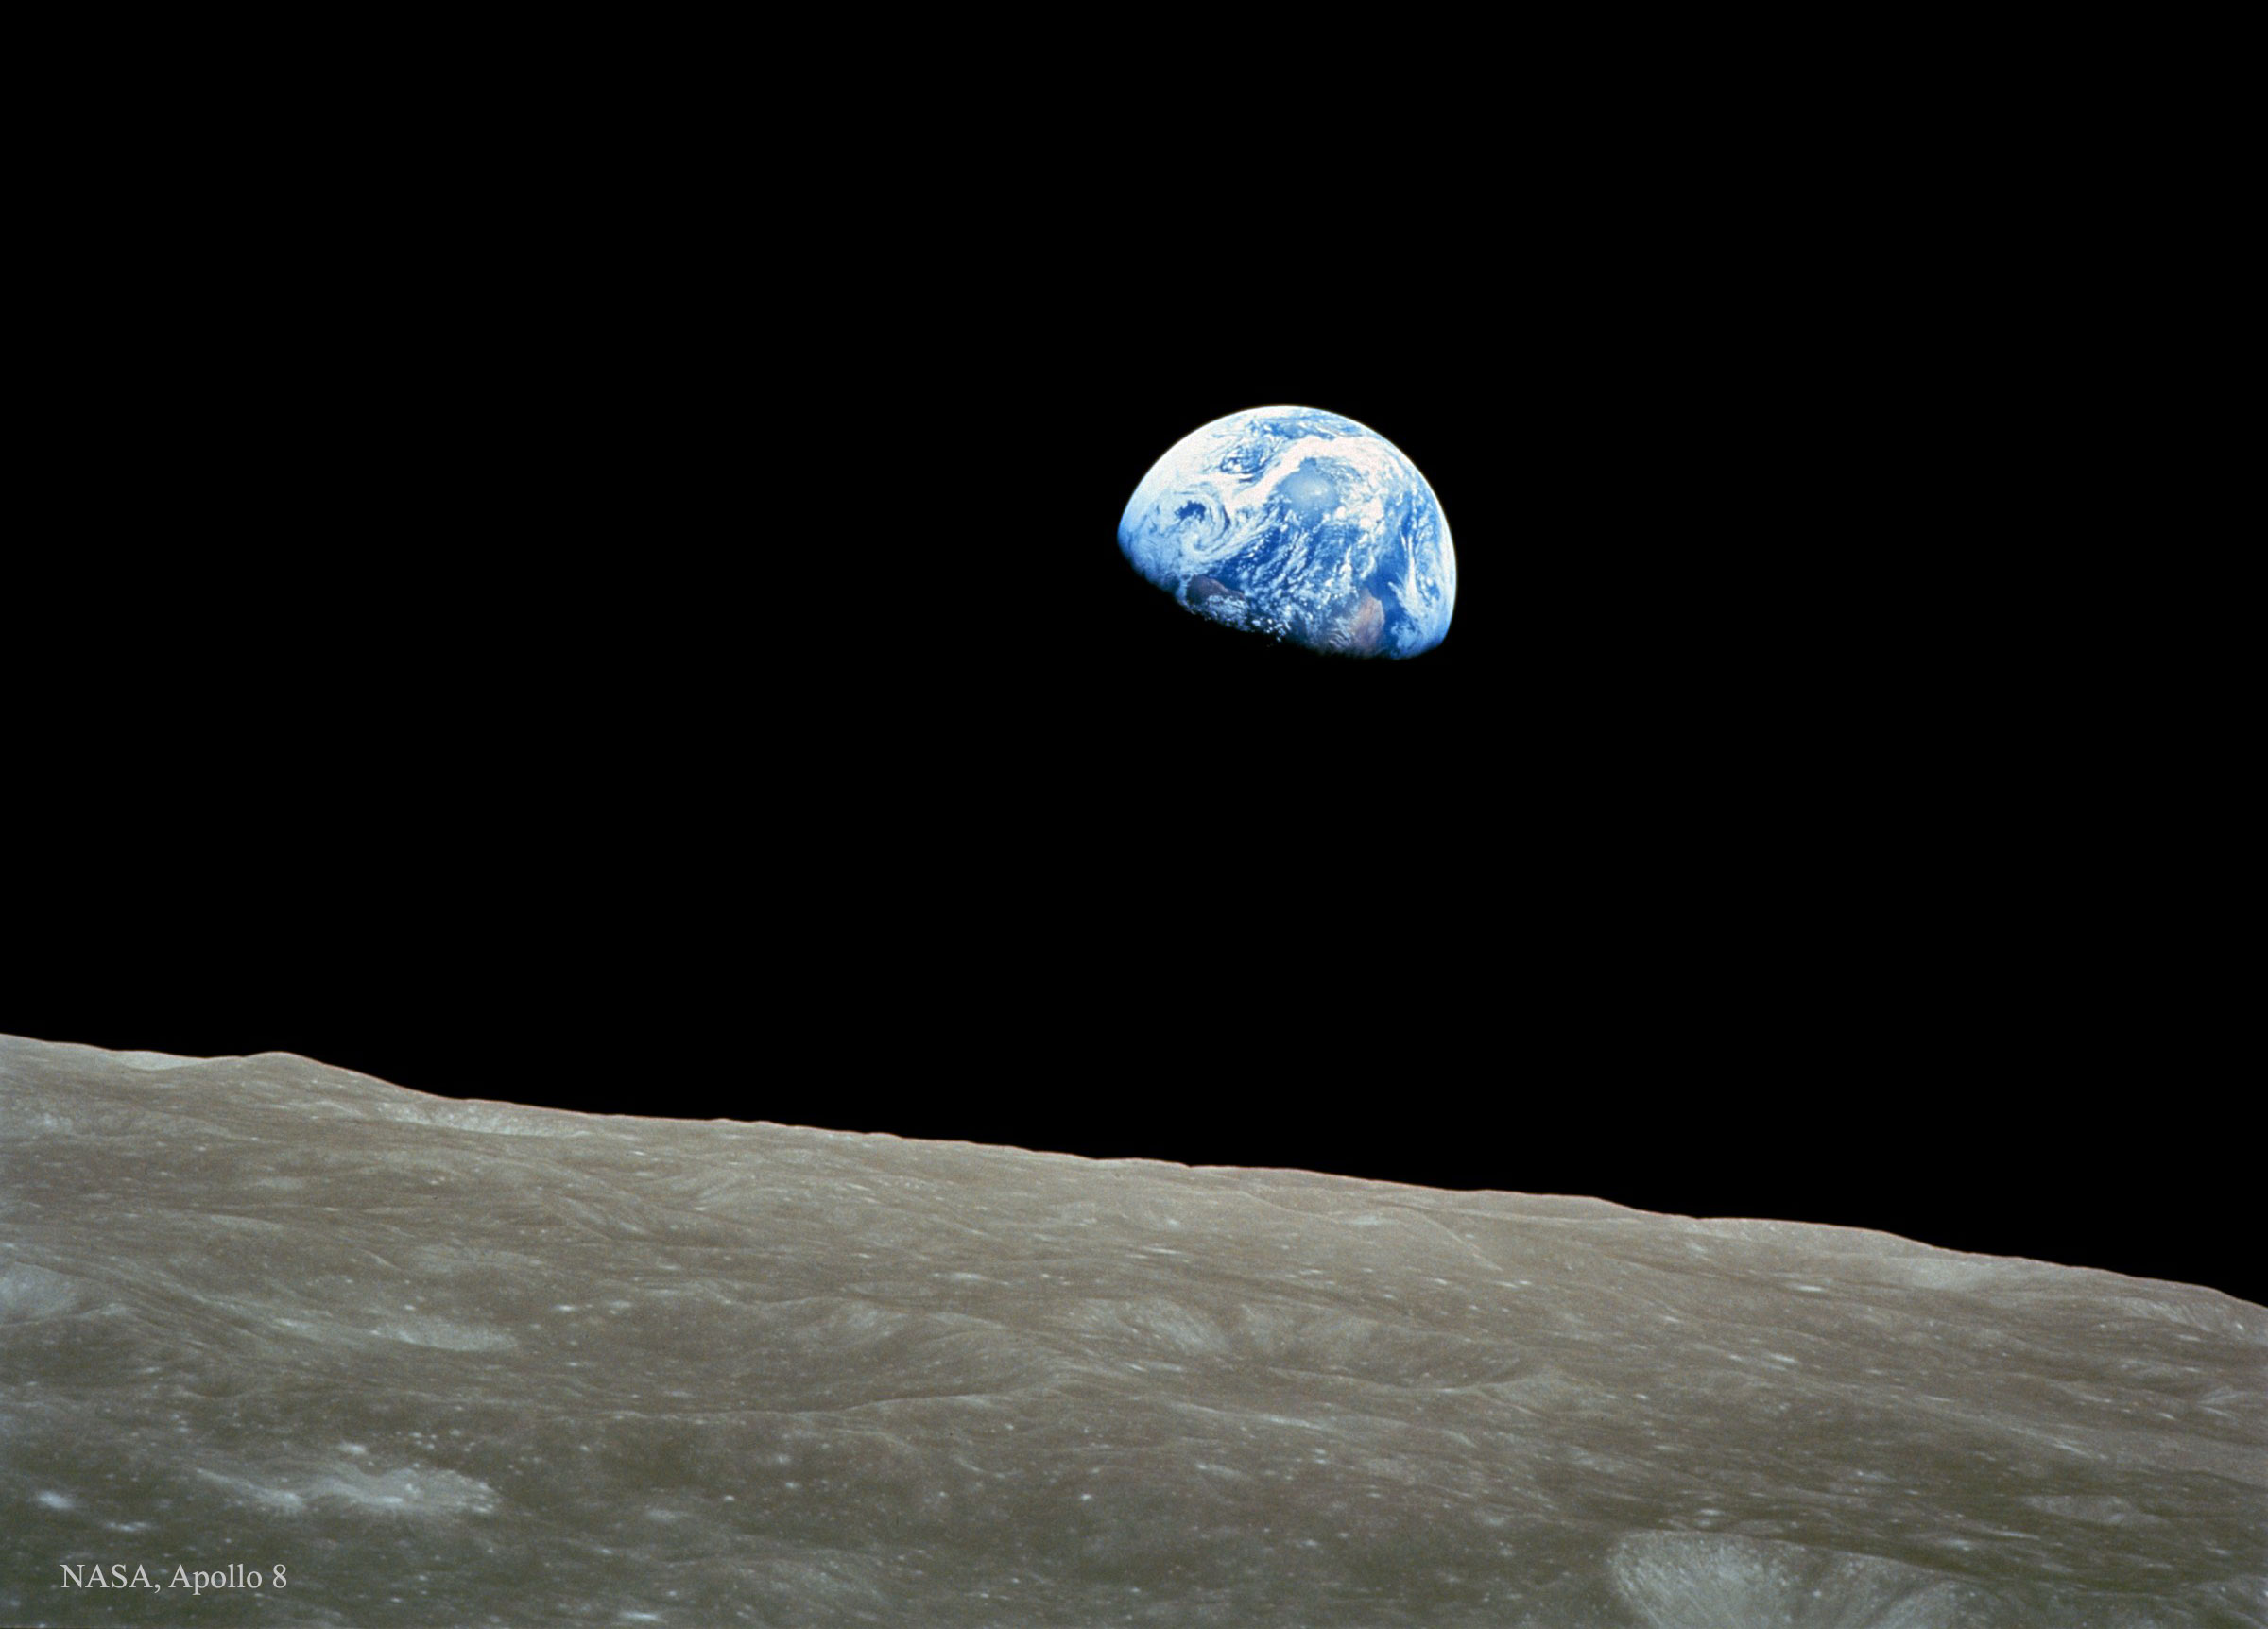 The famous Apollo 8 image of the Earth rising over the Moon